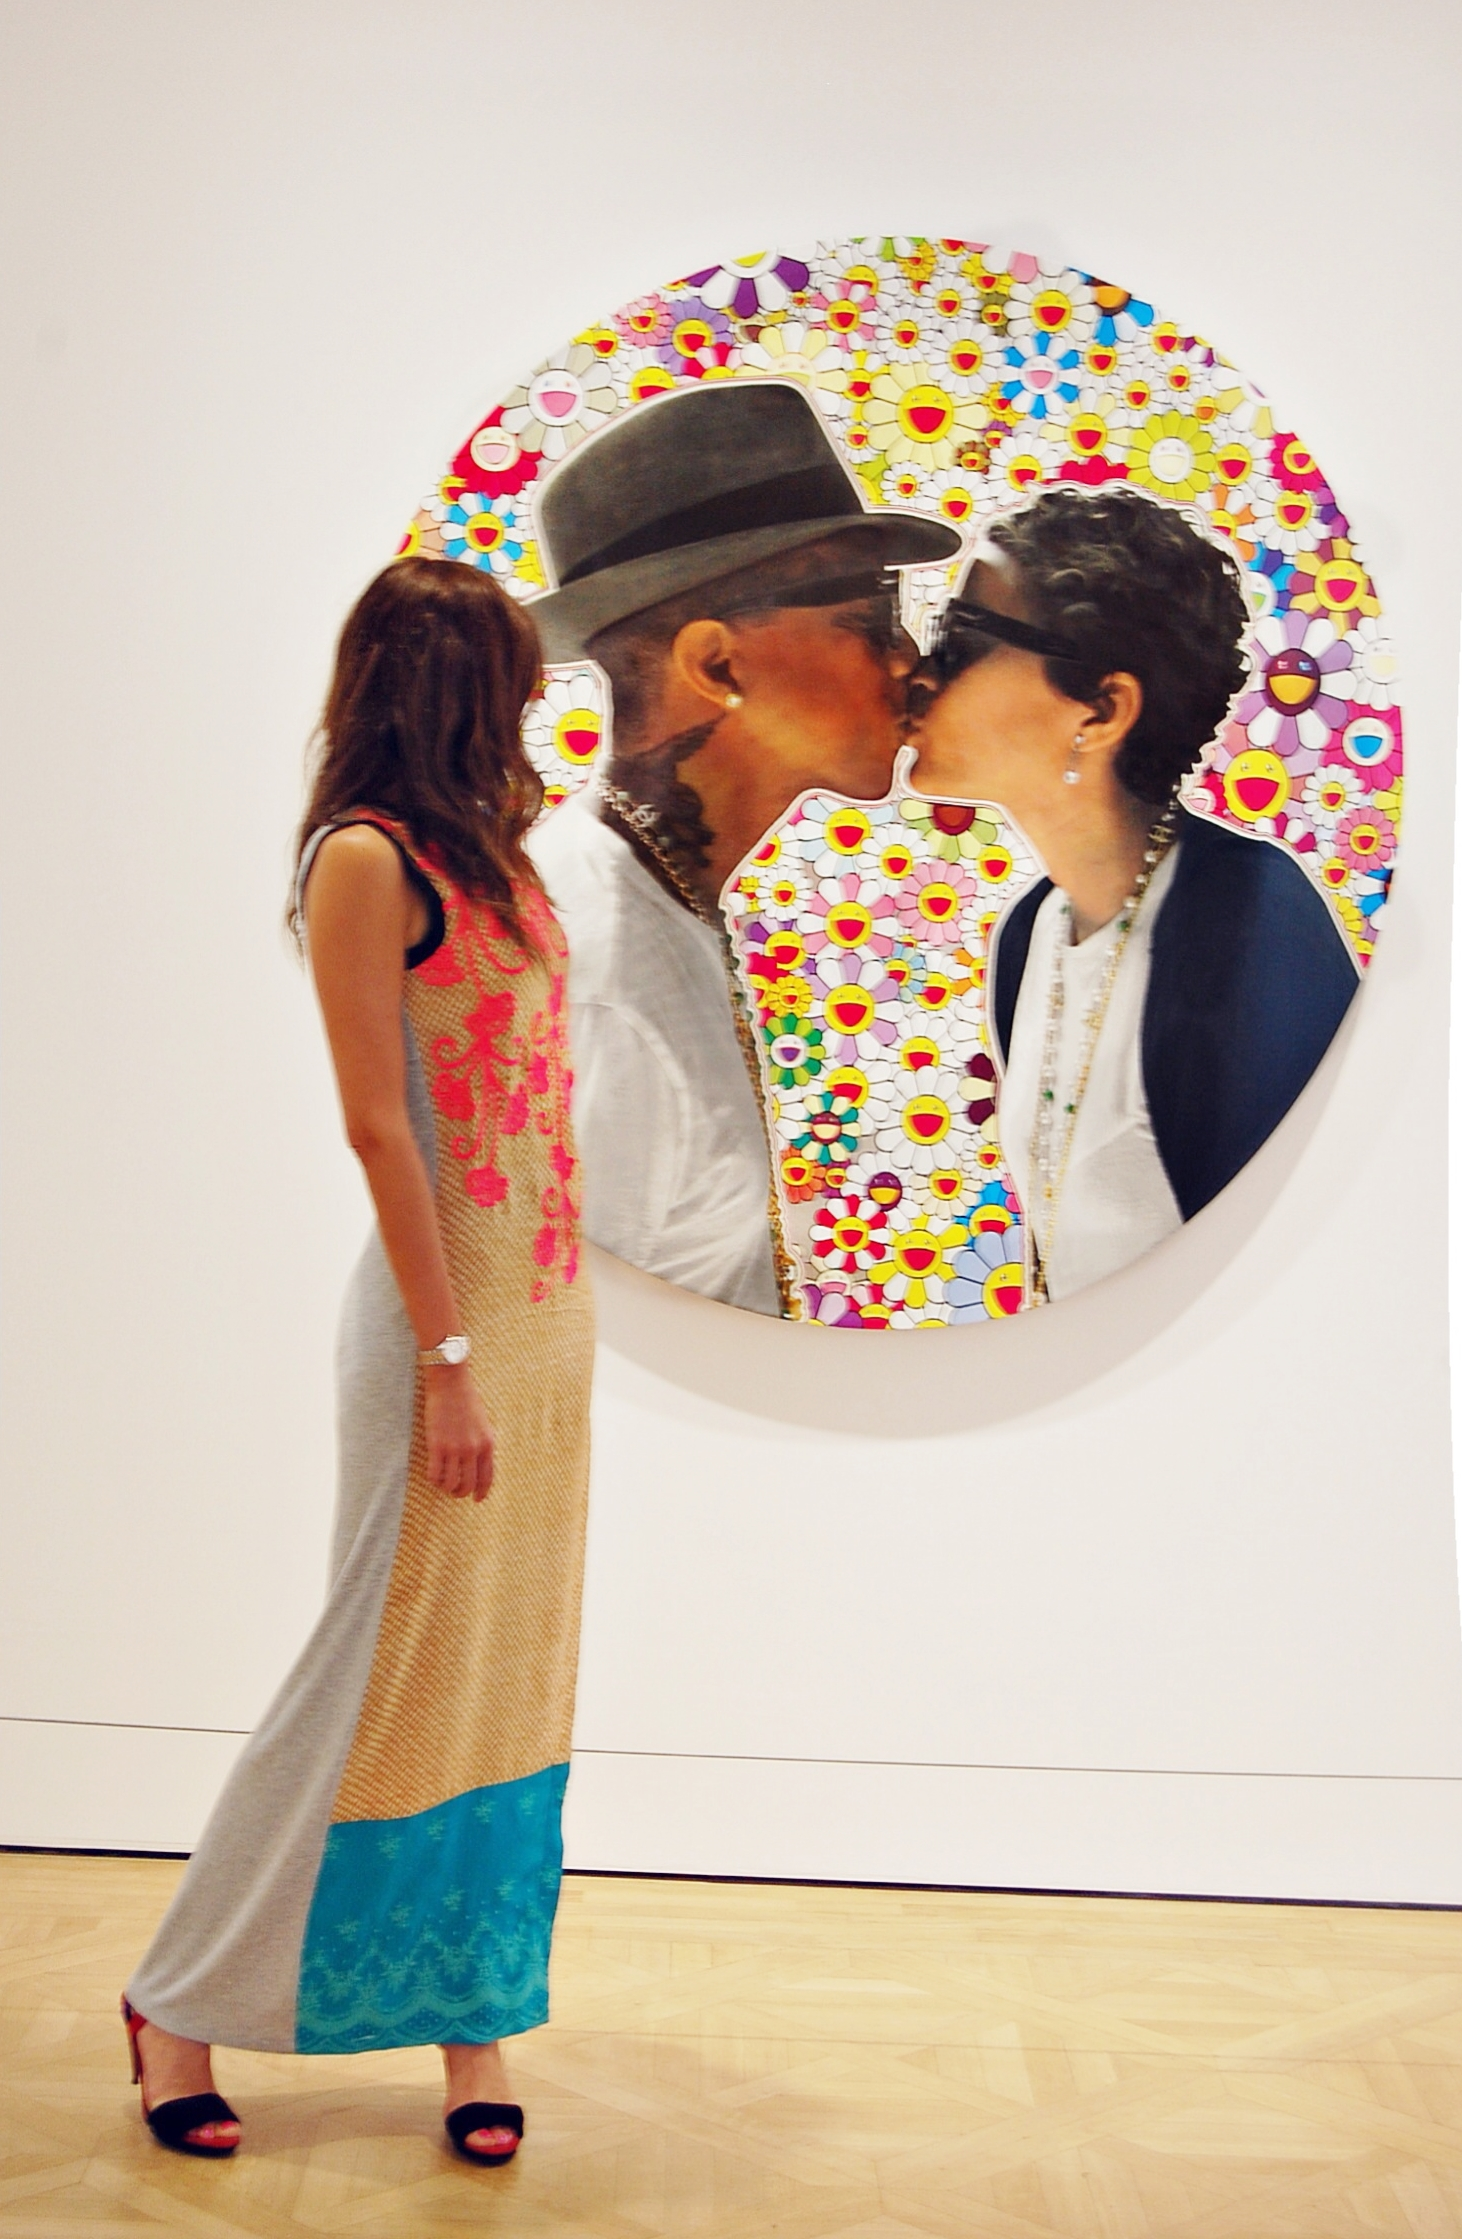 Another Takashi Murakami piece using Pharrel and Helen's portraits superimposed on top of his characteristic flowers.